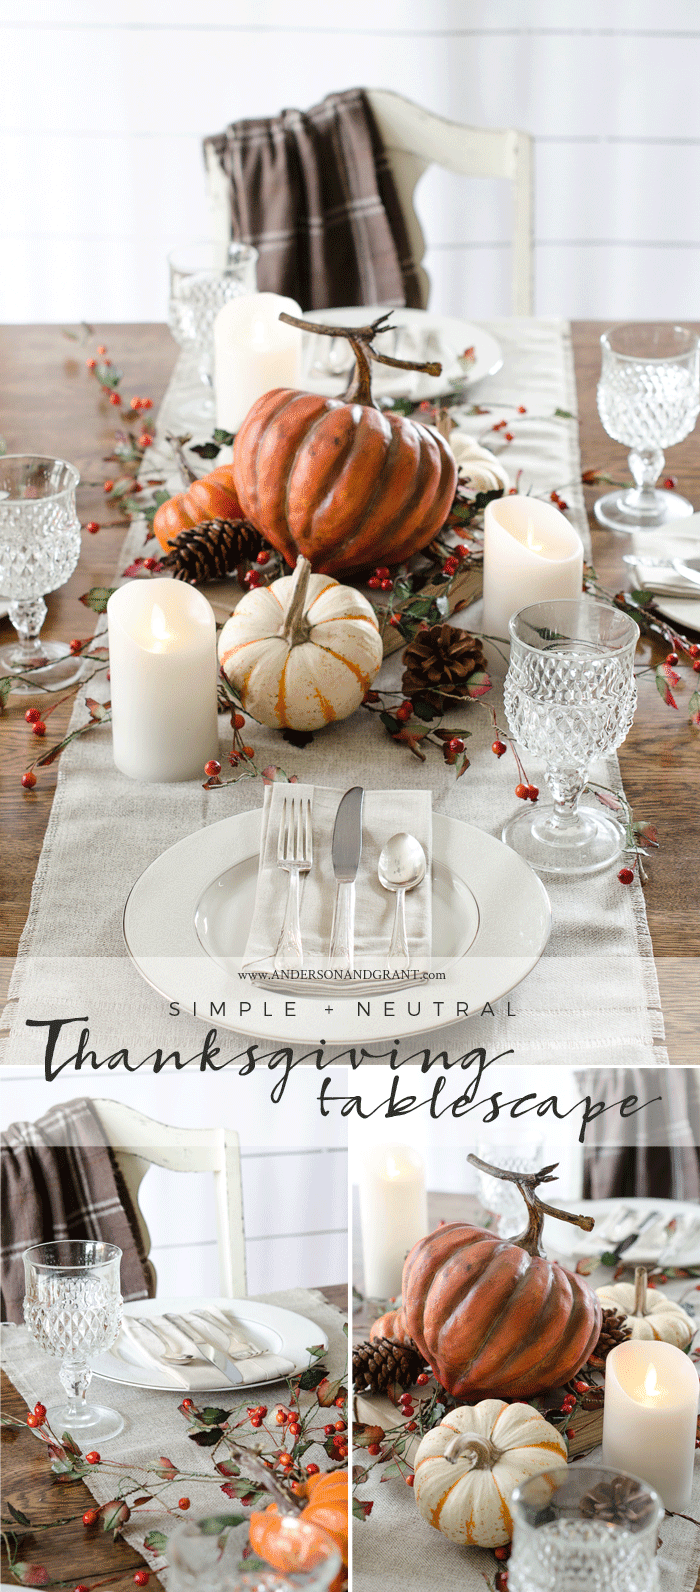 There are so many pretty details in this simple and neutral fall tablescape from anderson + grant.